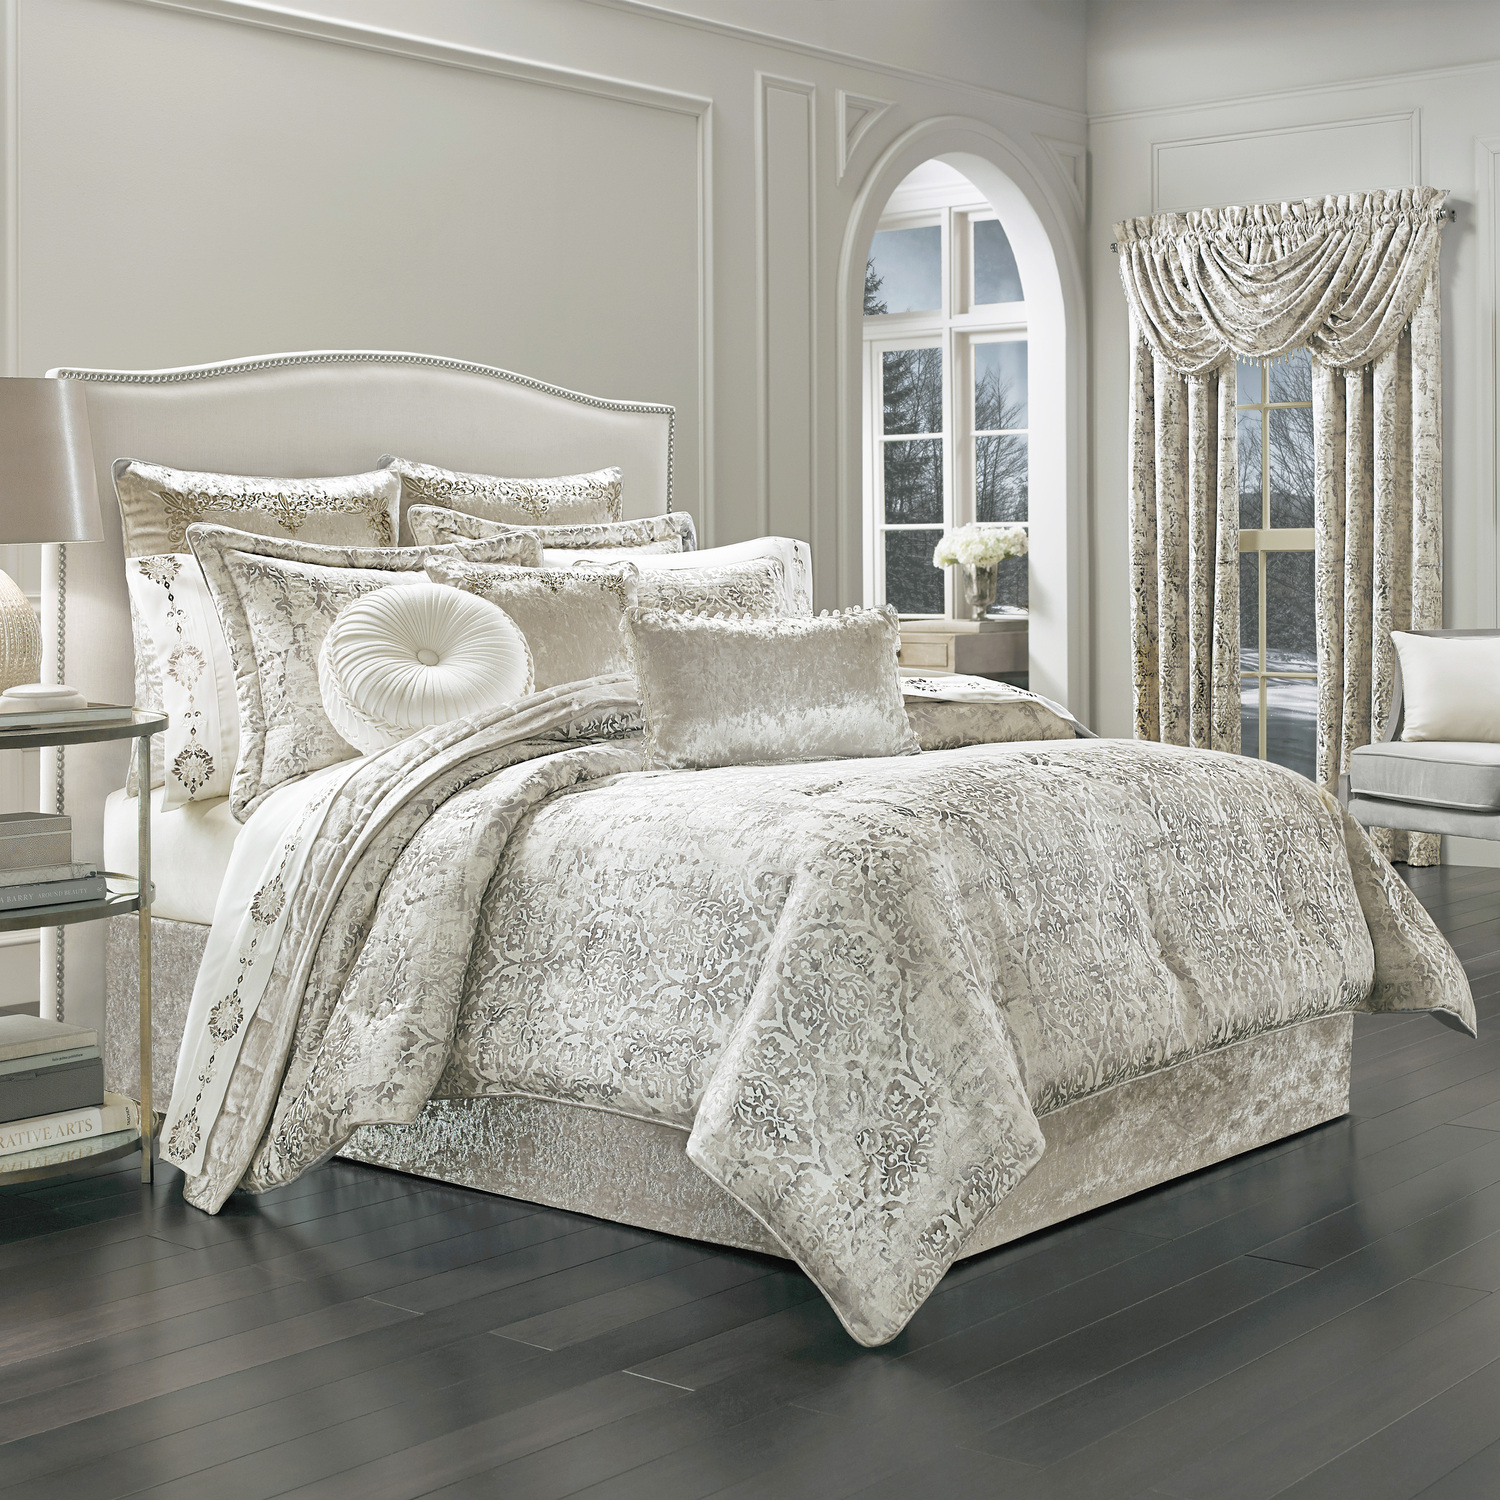 girl of part tuscan york for blue king bedcomforter set comfort pictures queencomfort croscill sebastian breathtaking full comforter size concept and at grey red sets hotel bedding brown teen com new home